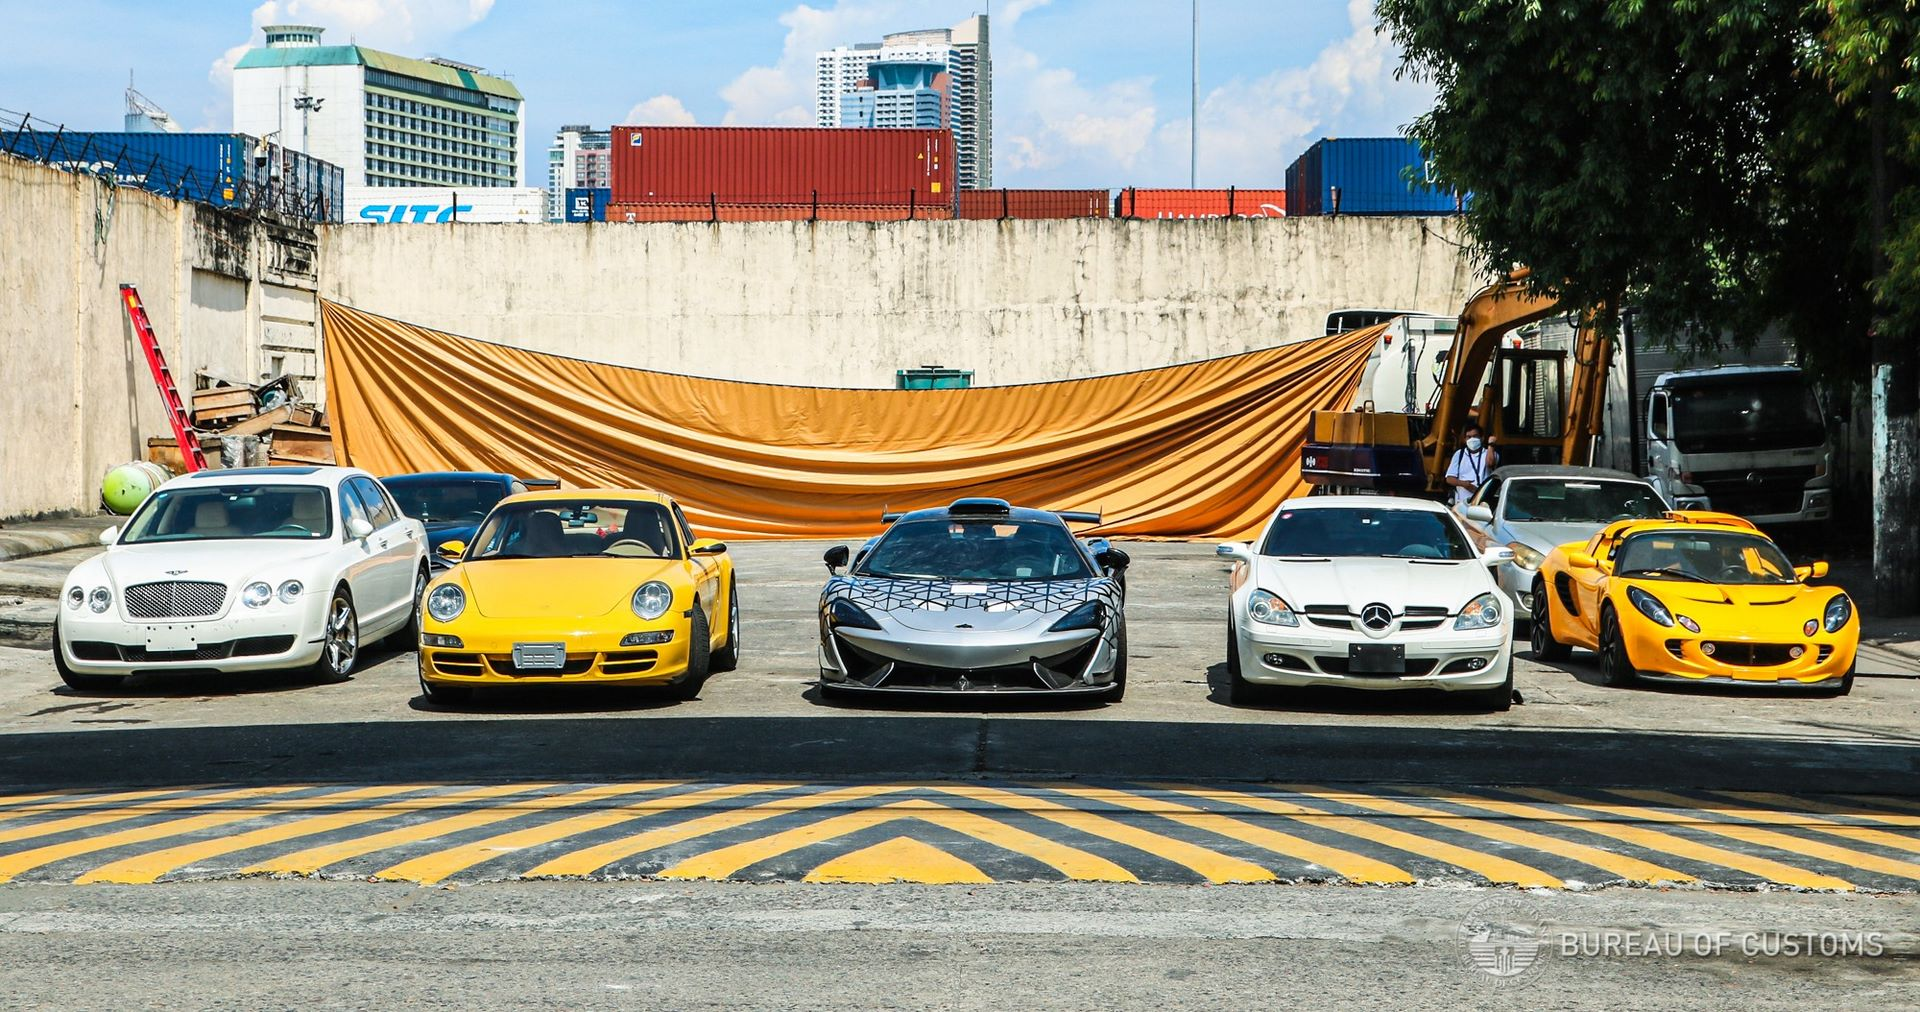 the-philippines-destroys-illegally-imported-cars-7